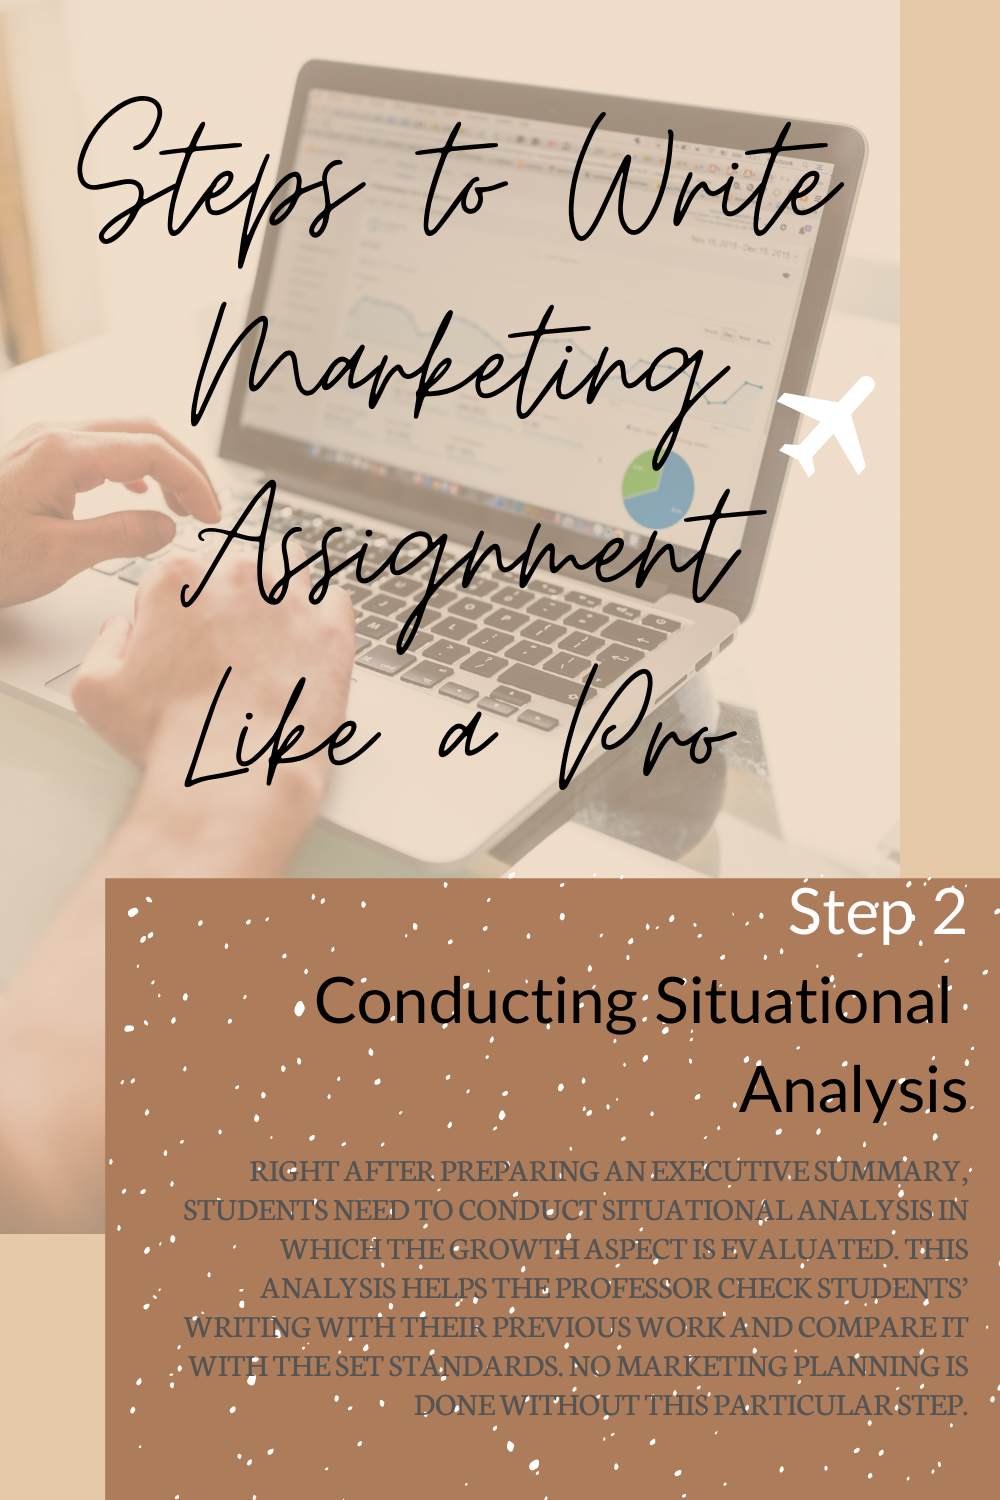 5 Step of Marketing Planning Assignment by Global Assignment Help    Academic writing services, How to plan, Types of essay